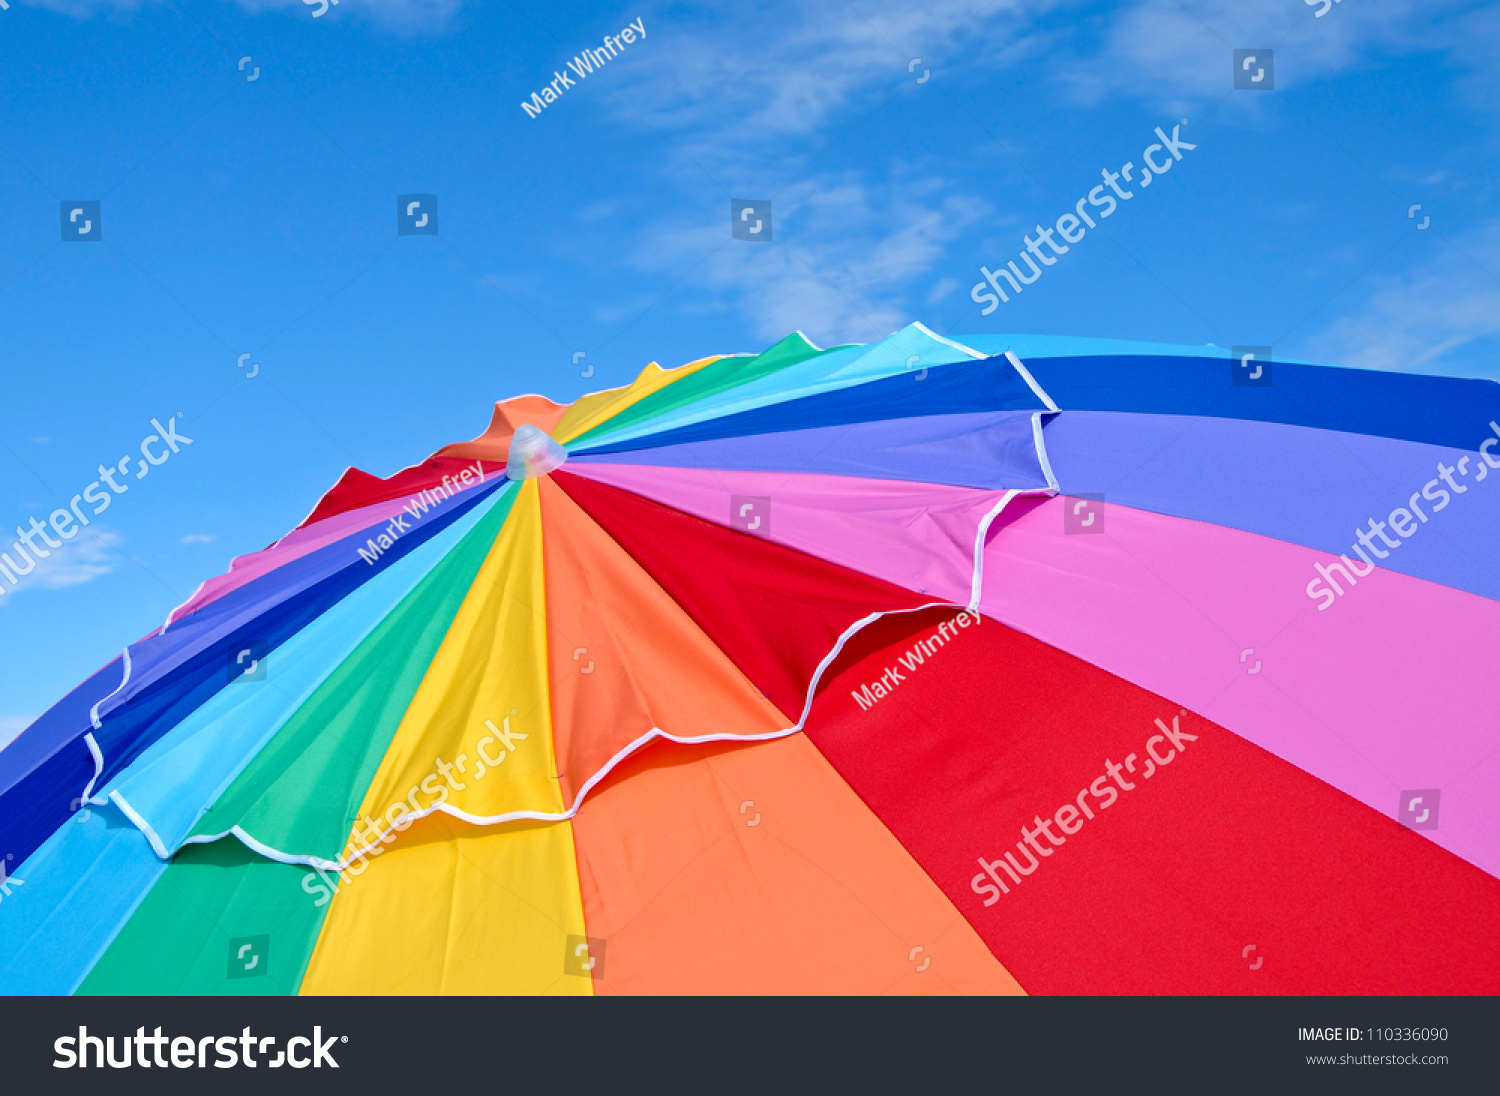 Top of a Colorful Beach Umbrella against the Sky